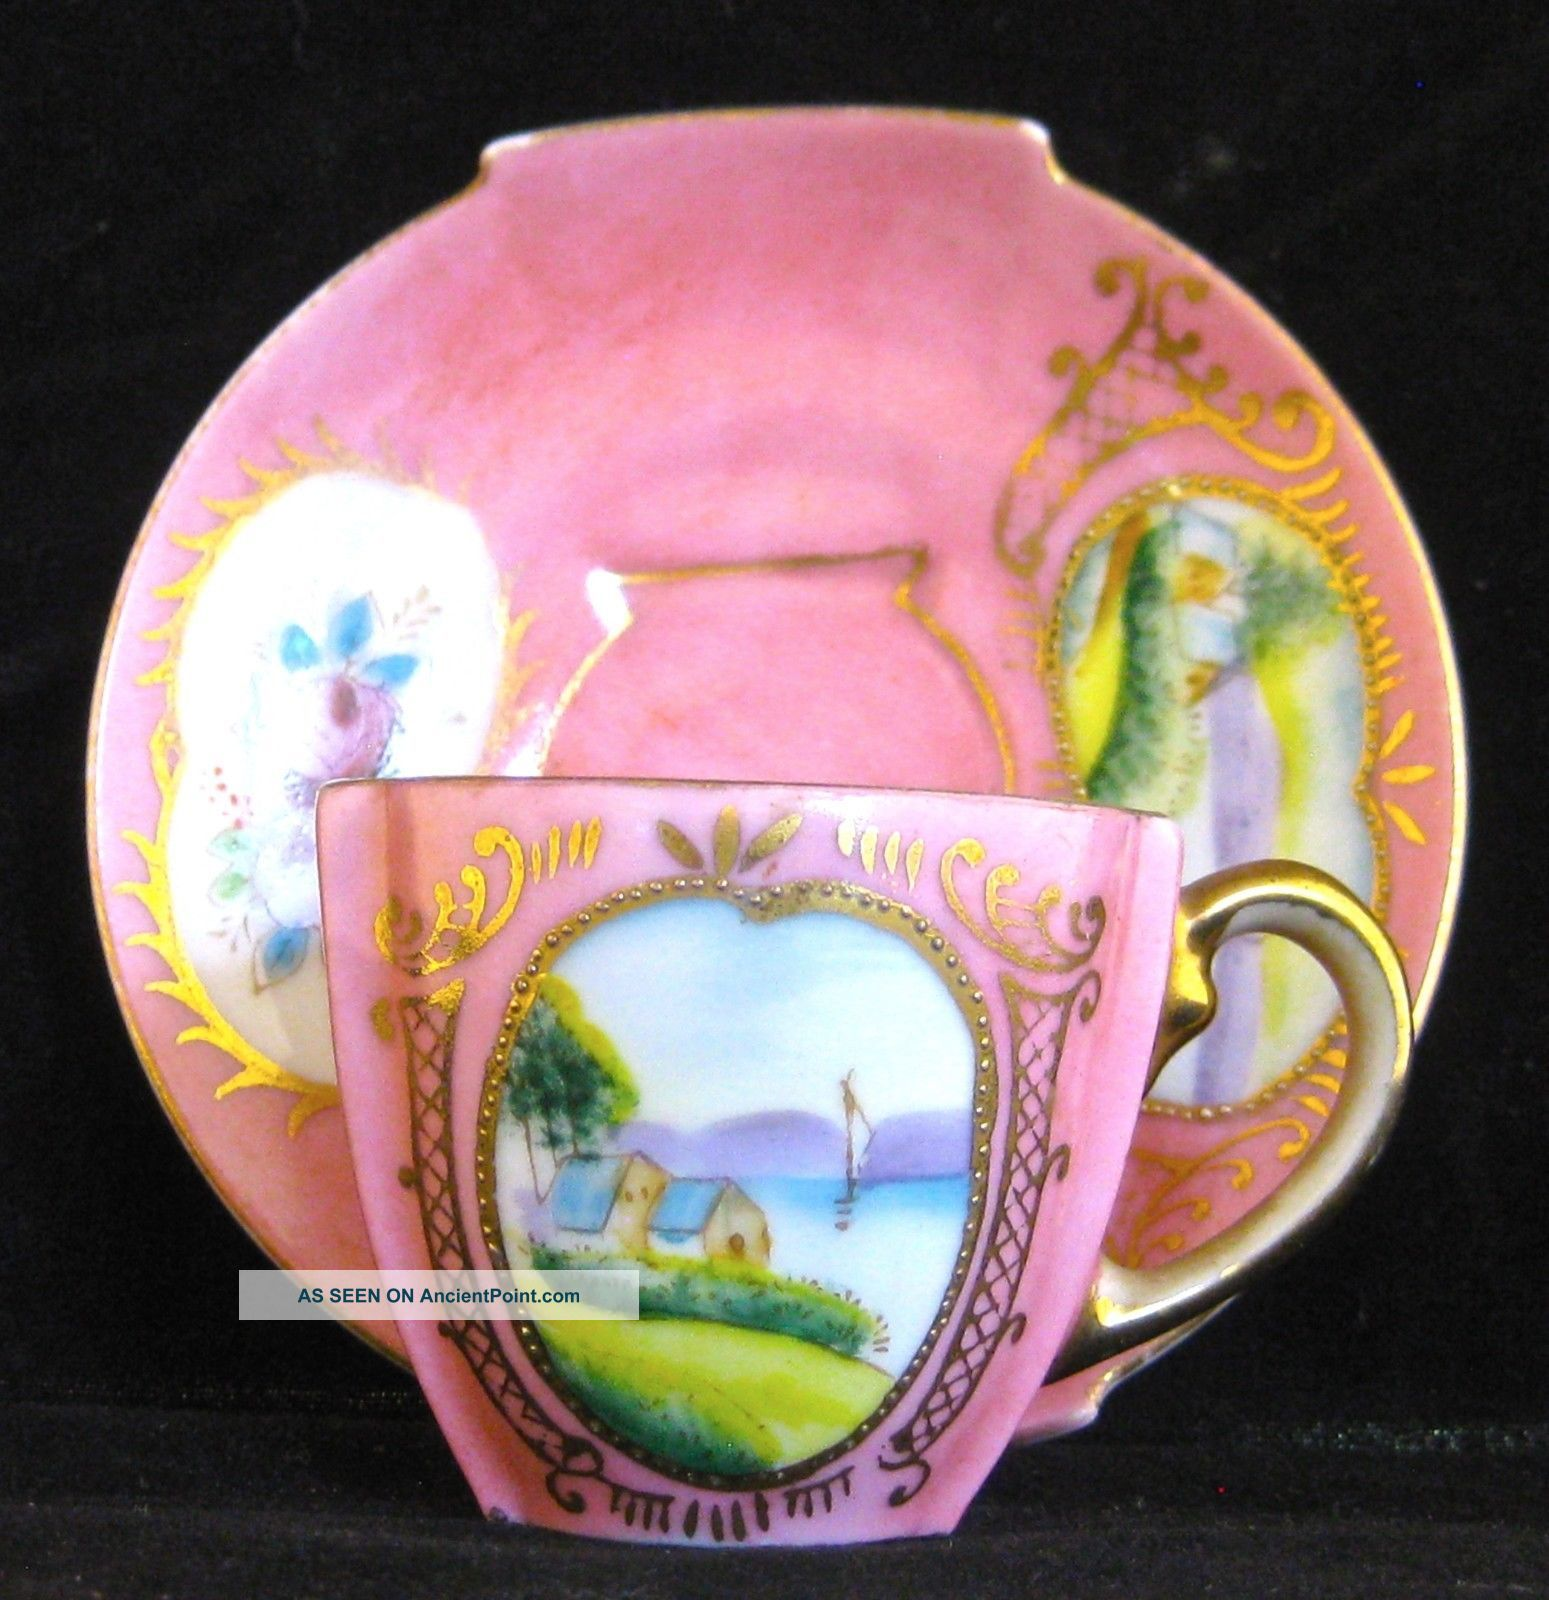 Vintage Footed Scenic Pink Floral Demitasse Chocolate Cup Saucer Ardalt Lenwile Cups & Saucers photo